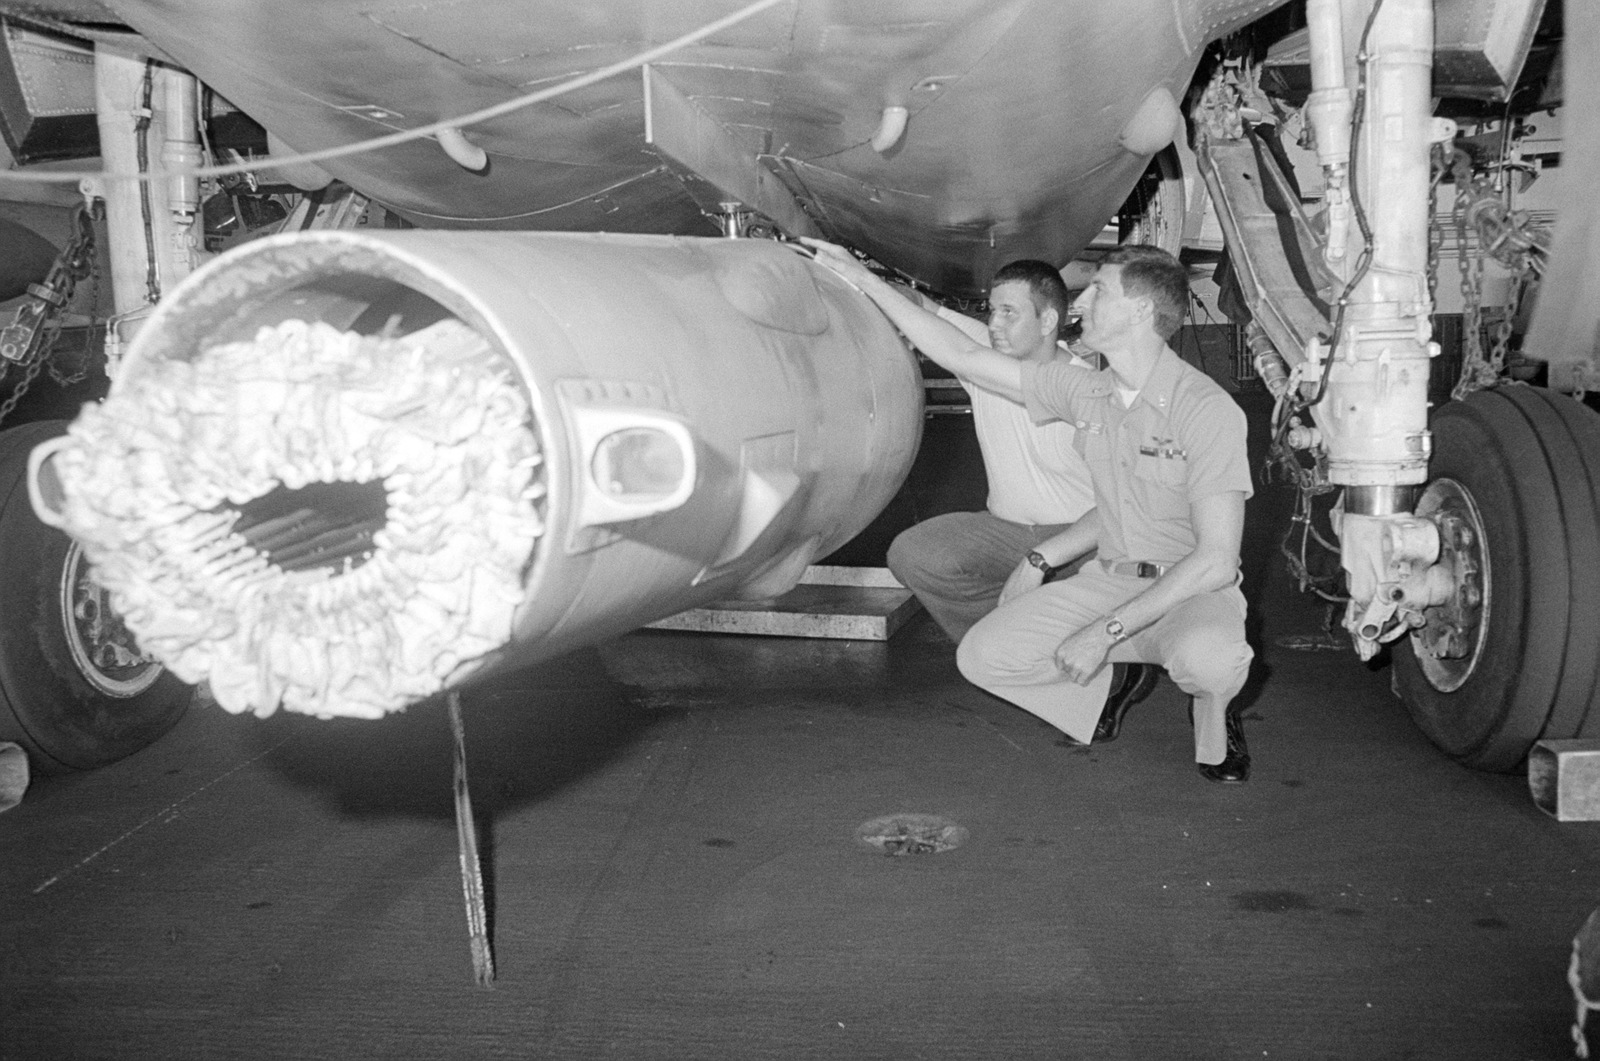 CHIEF Aviation Machinist's Mate Larry Hanson inspects an aerial refueling unit attached to the centerline of an A-6 Intruder aircraft. The A-6 is in the hangar bay of the aircraft carrier USS KITTY HAWK (CV 63)